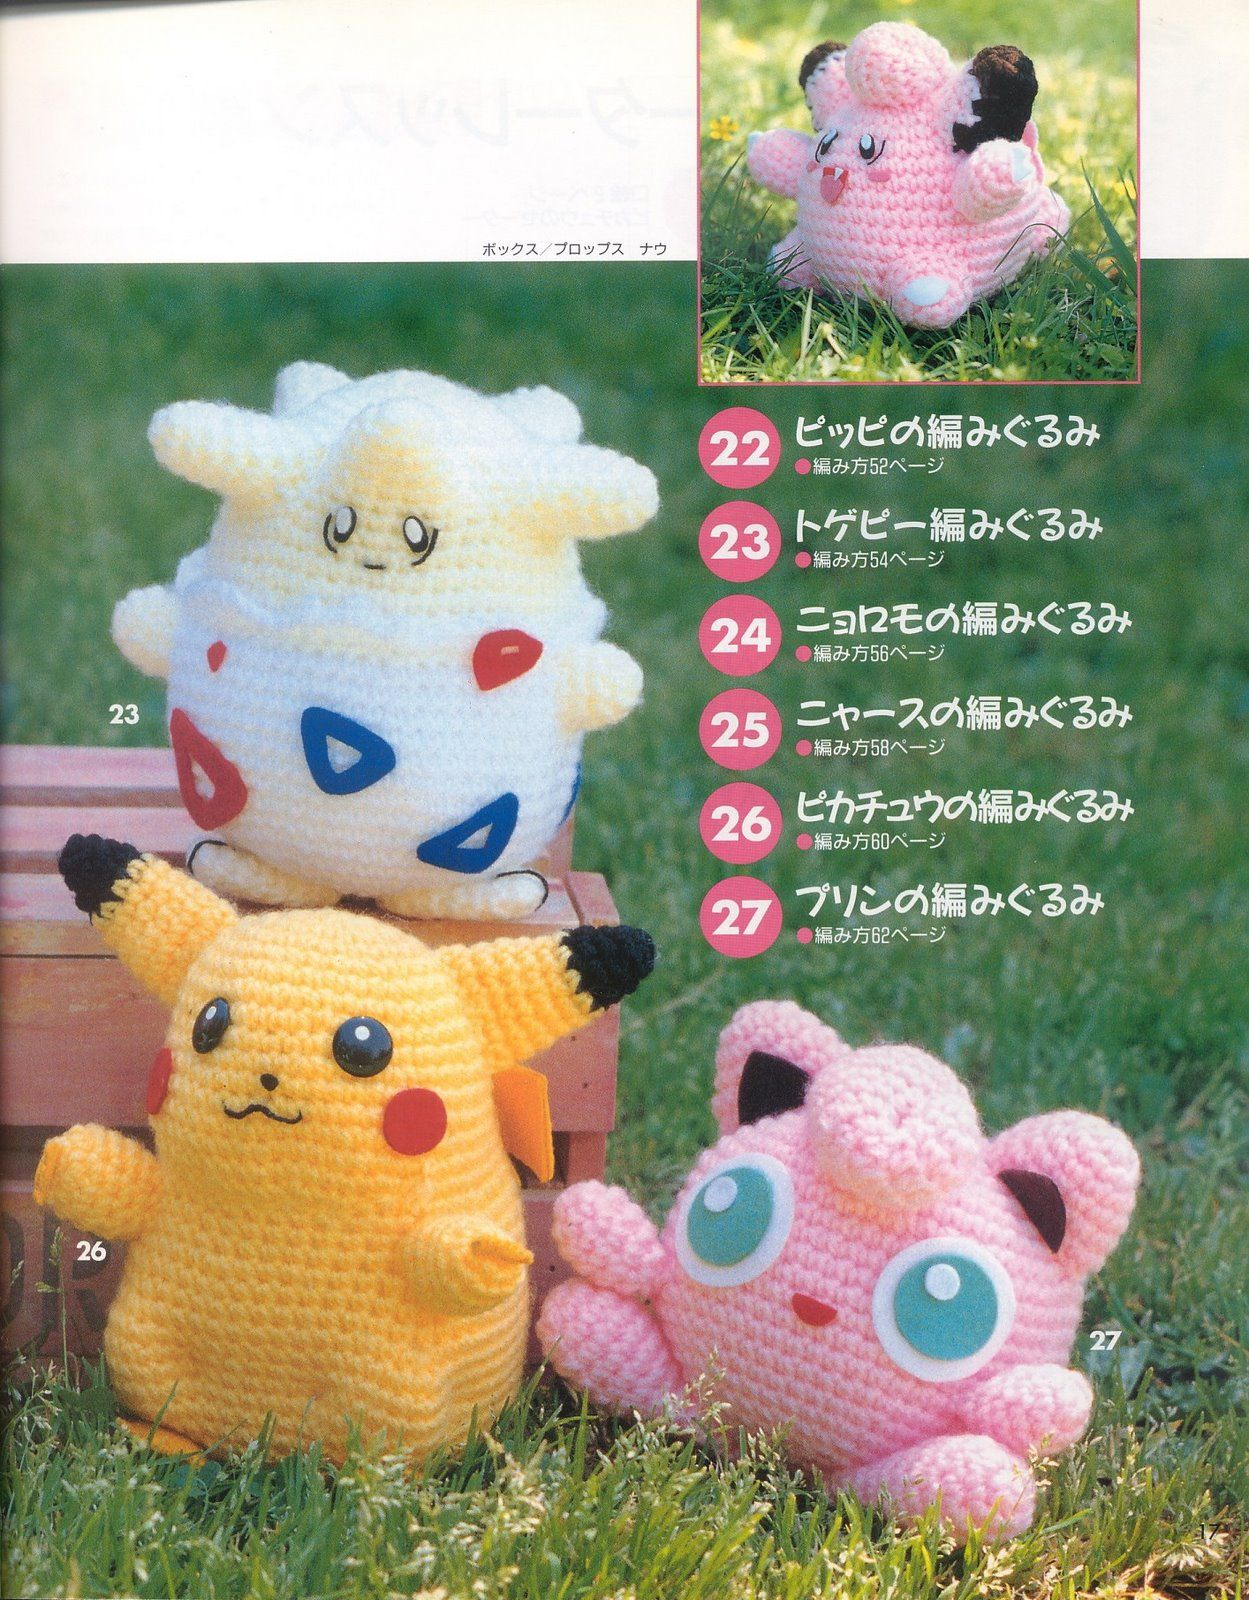 Crochet Patterns Pokemon Characters : Blog de Goanna: Munecos Pokemon en Amigurumi